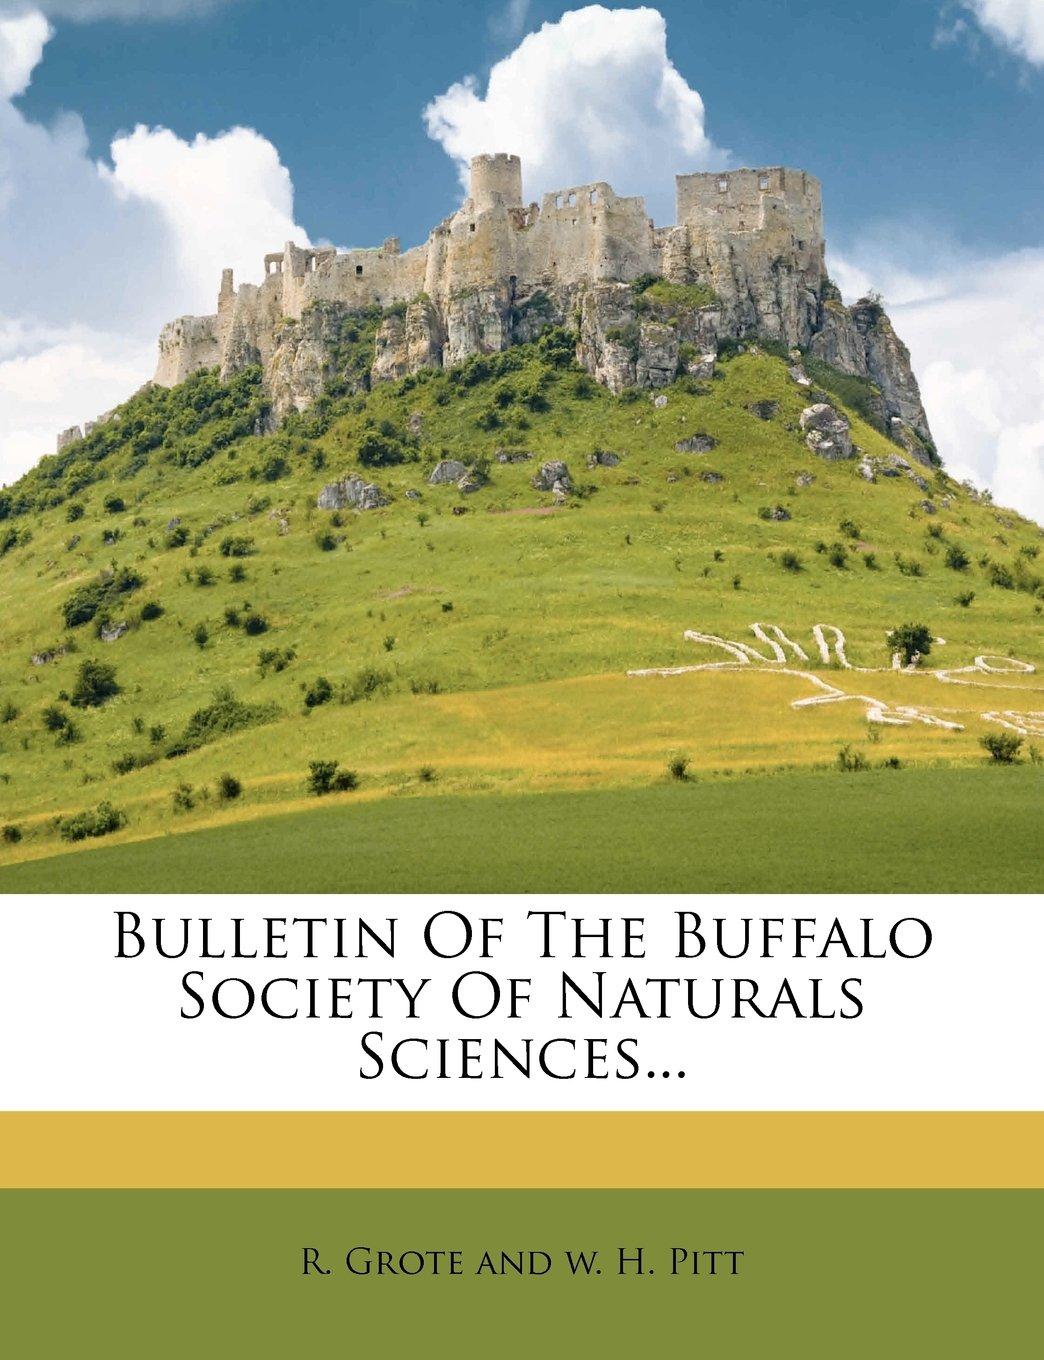 Read Online Bulletin Of The Buffalo Society Of Naturals Sciences... PDF